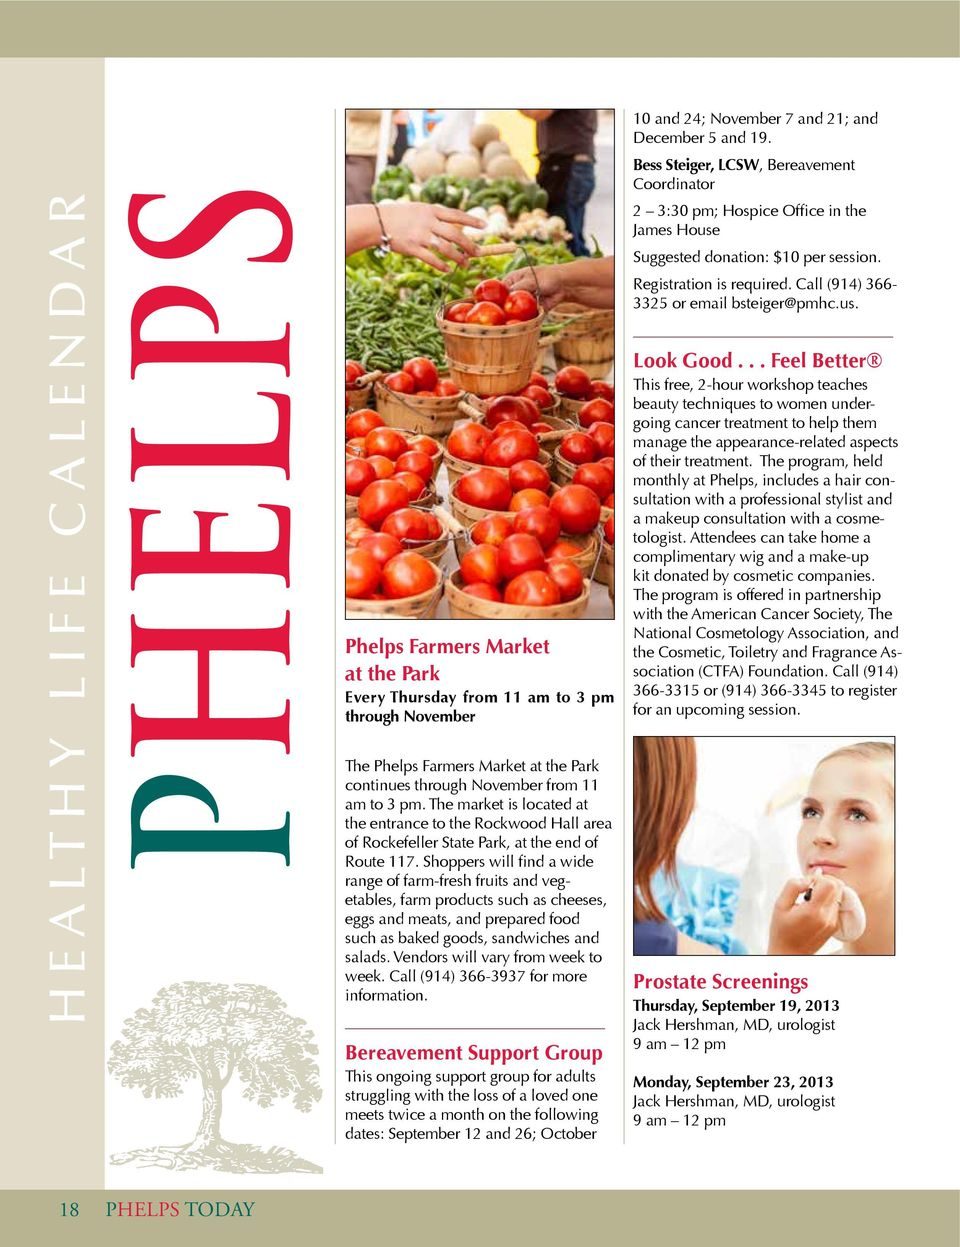 healthy life calendar PHELPS Phelps Farmers Market at the Park Every Thursday from 11 am to 3 pm through November The Phelps Farmers Market at the Park continues through November from 11 am to 3 pm.